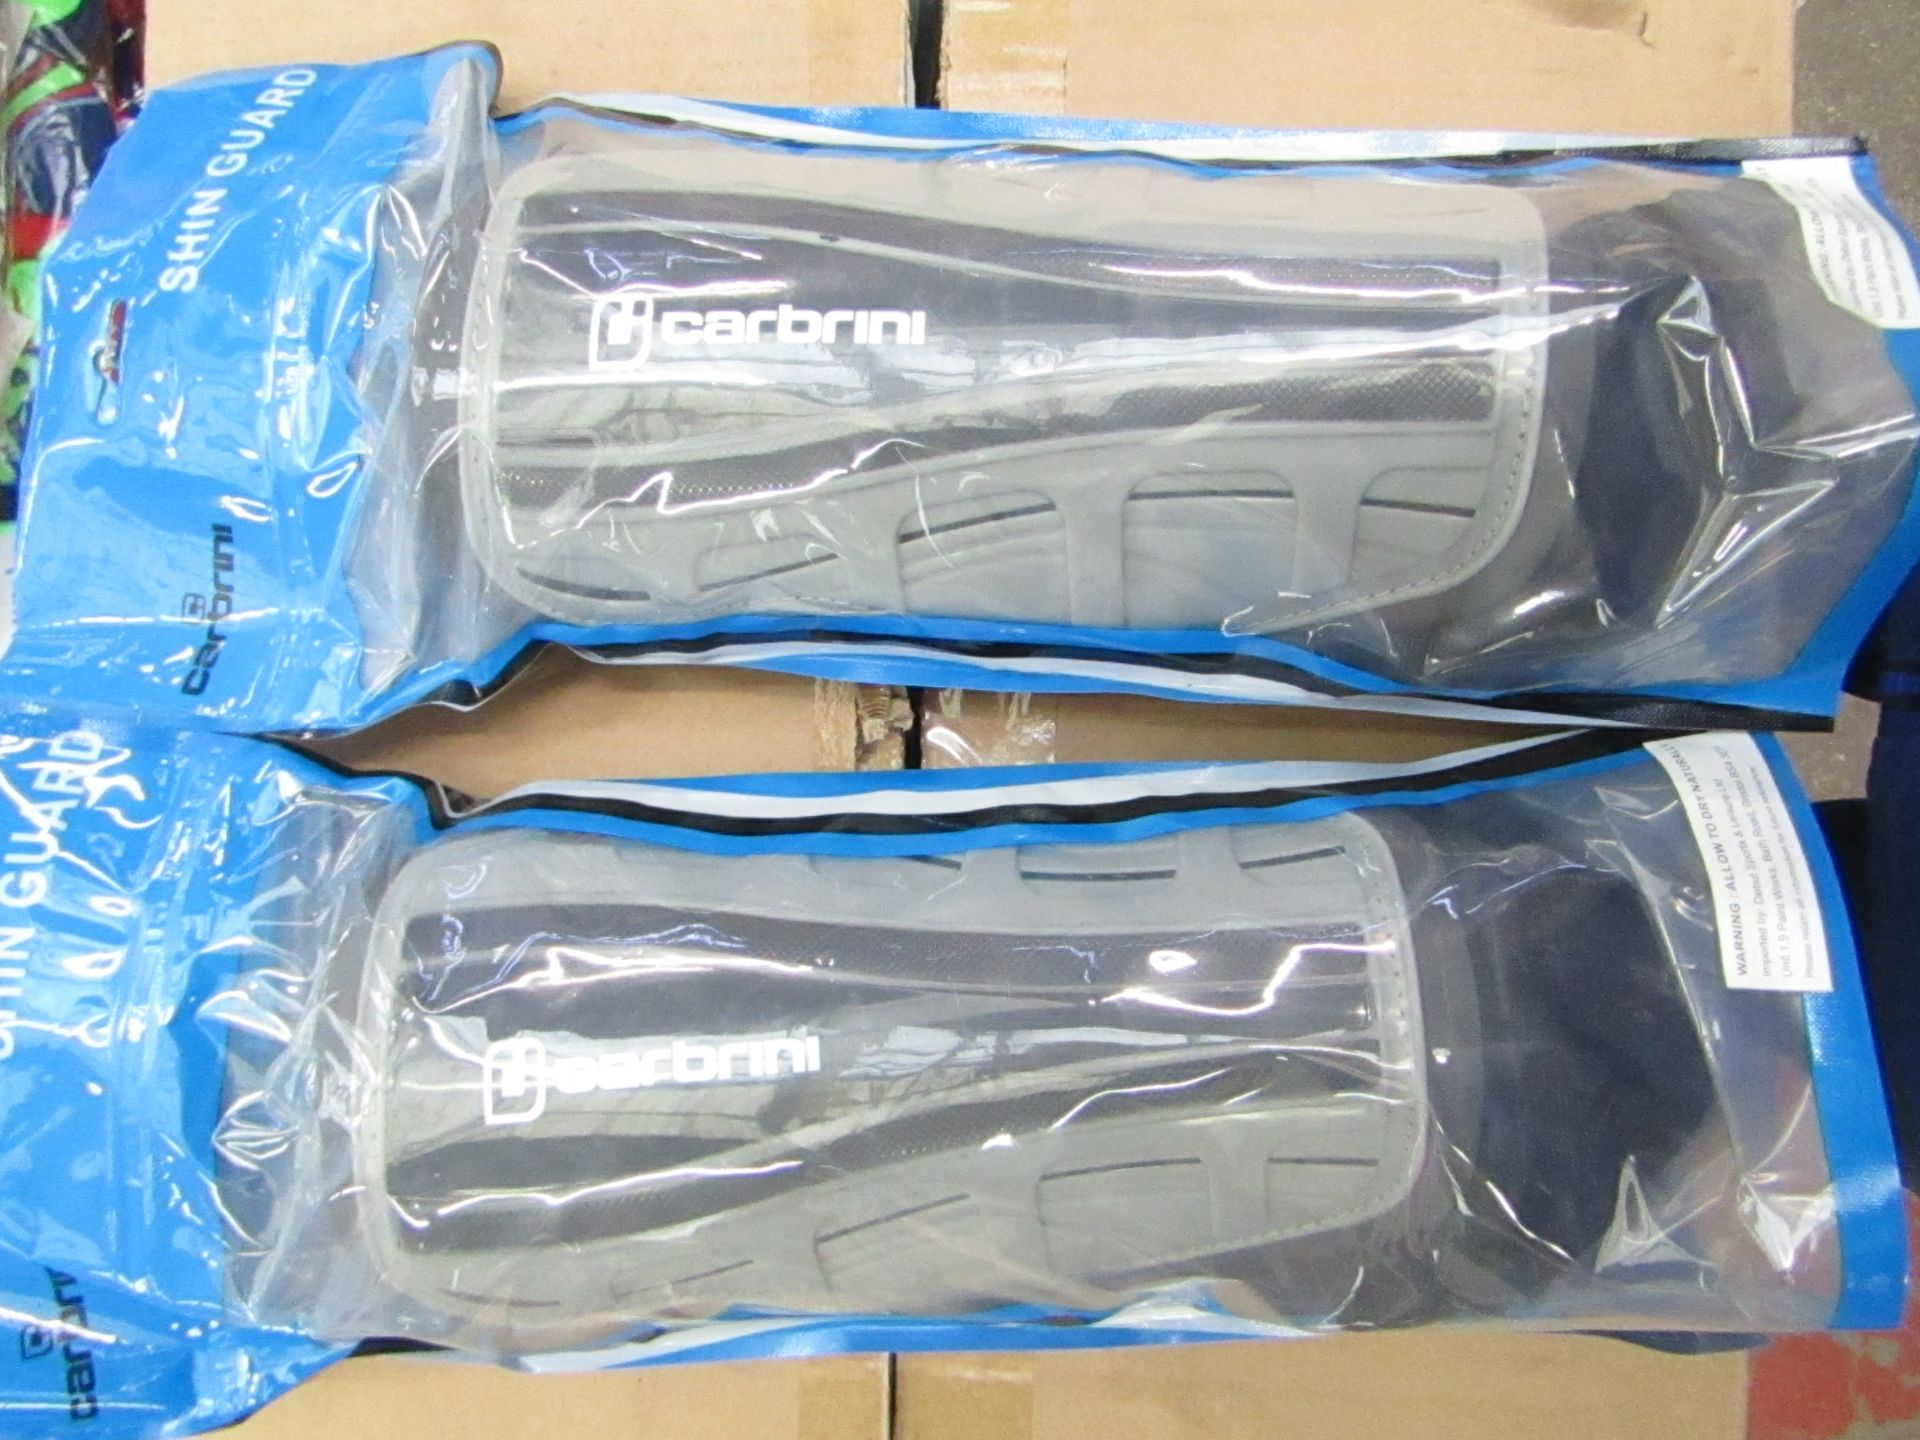 Lot 12 - 2 x Pair of Adult Carbrini Shin Guards with ankle protectors, new & packaged